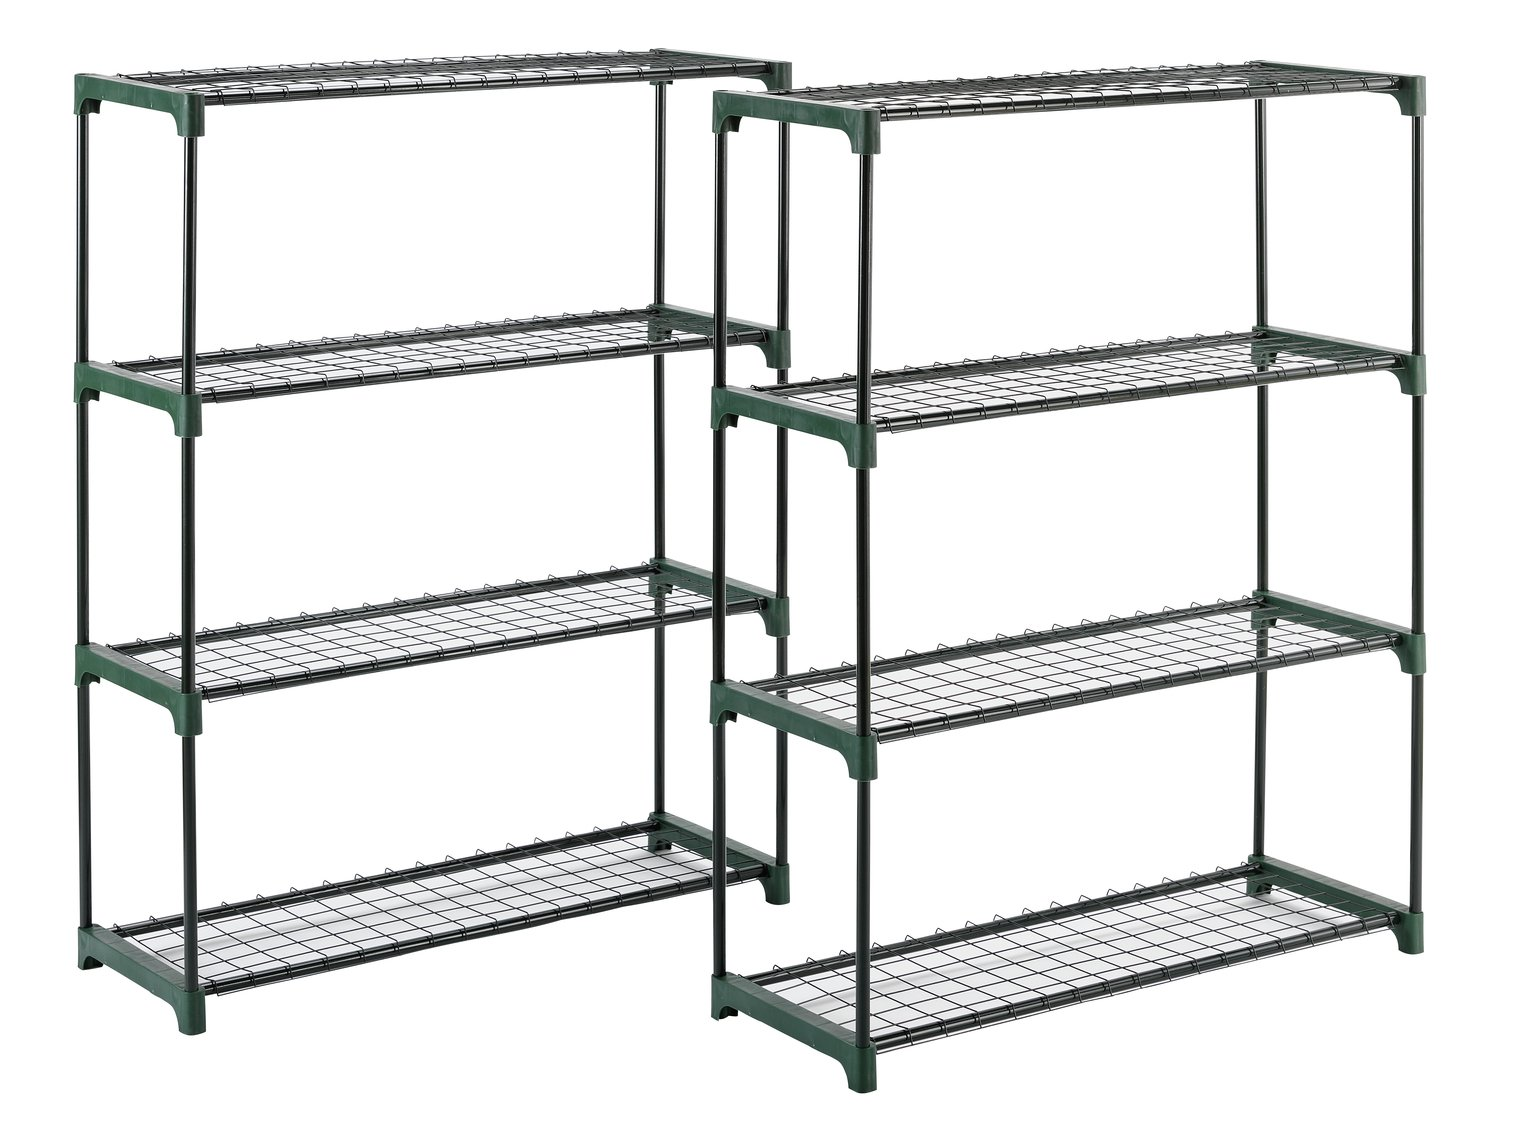 McGregor Greenhouse Shelving review